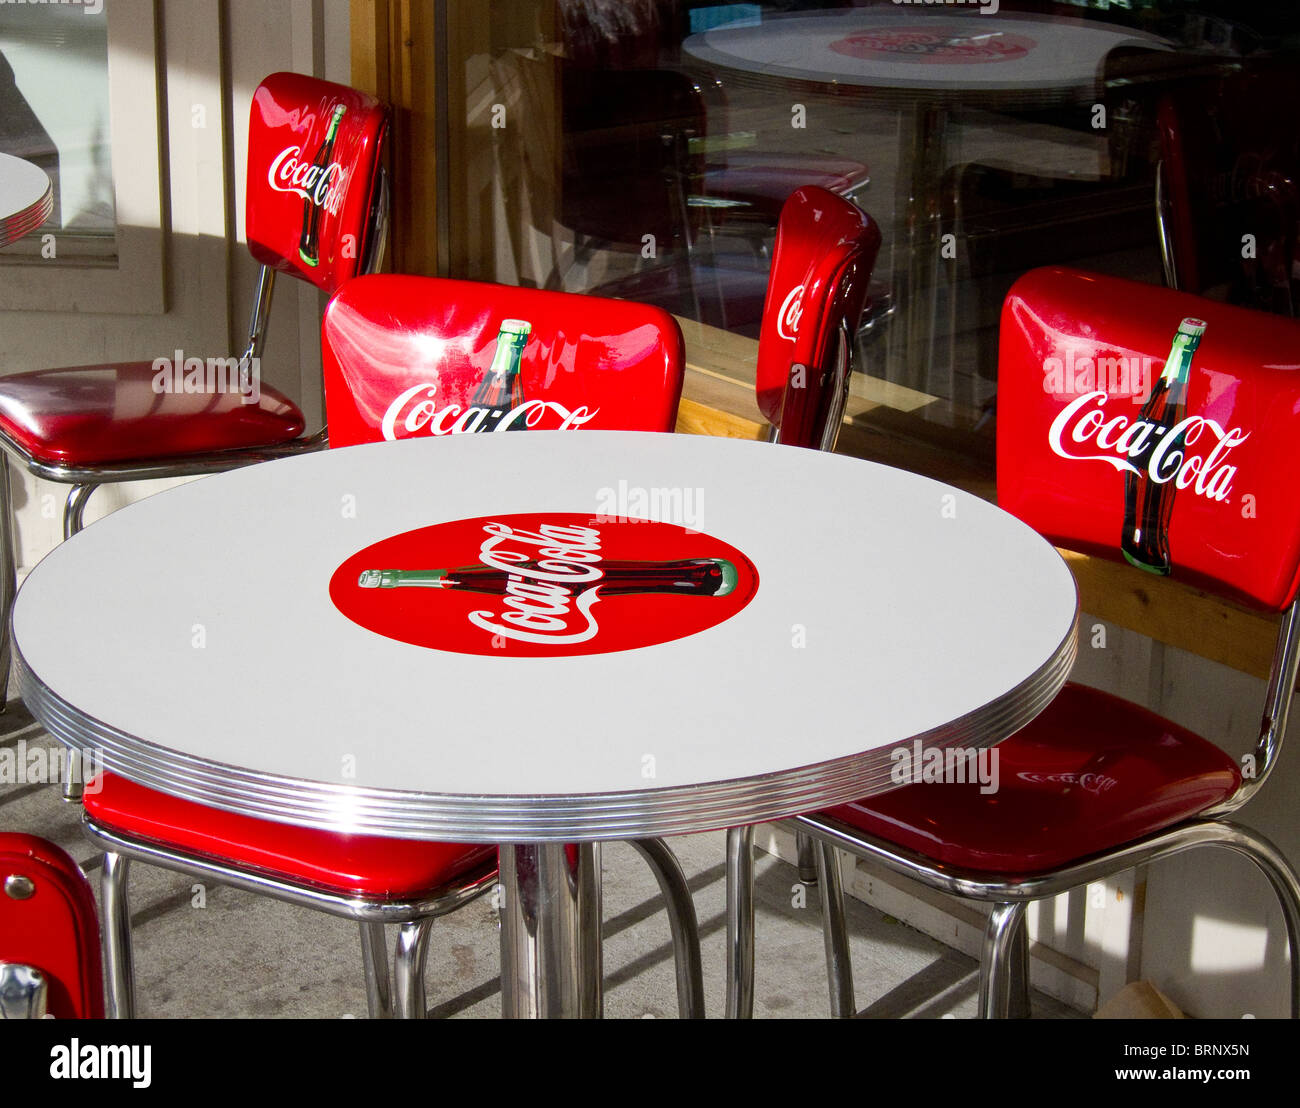 Coca Cola Table And Chairs Red Coca Cola Chairs Around A White Coca Cola Table Stock